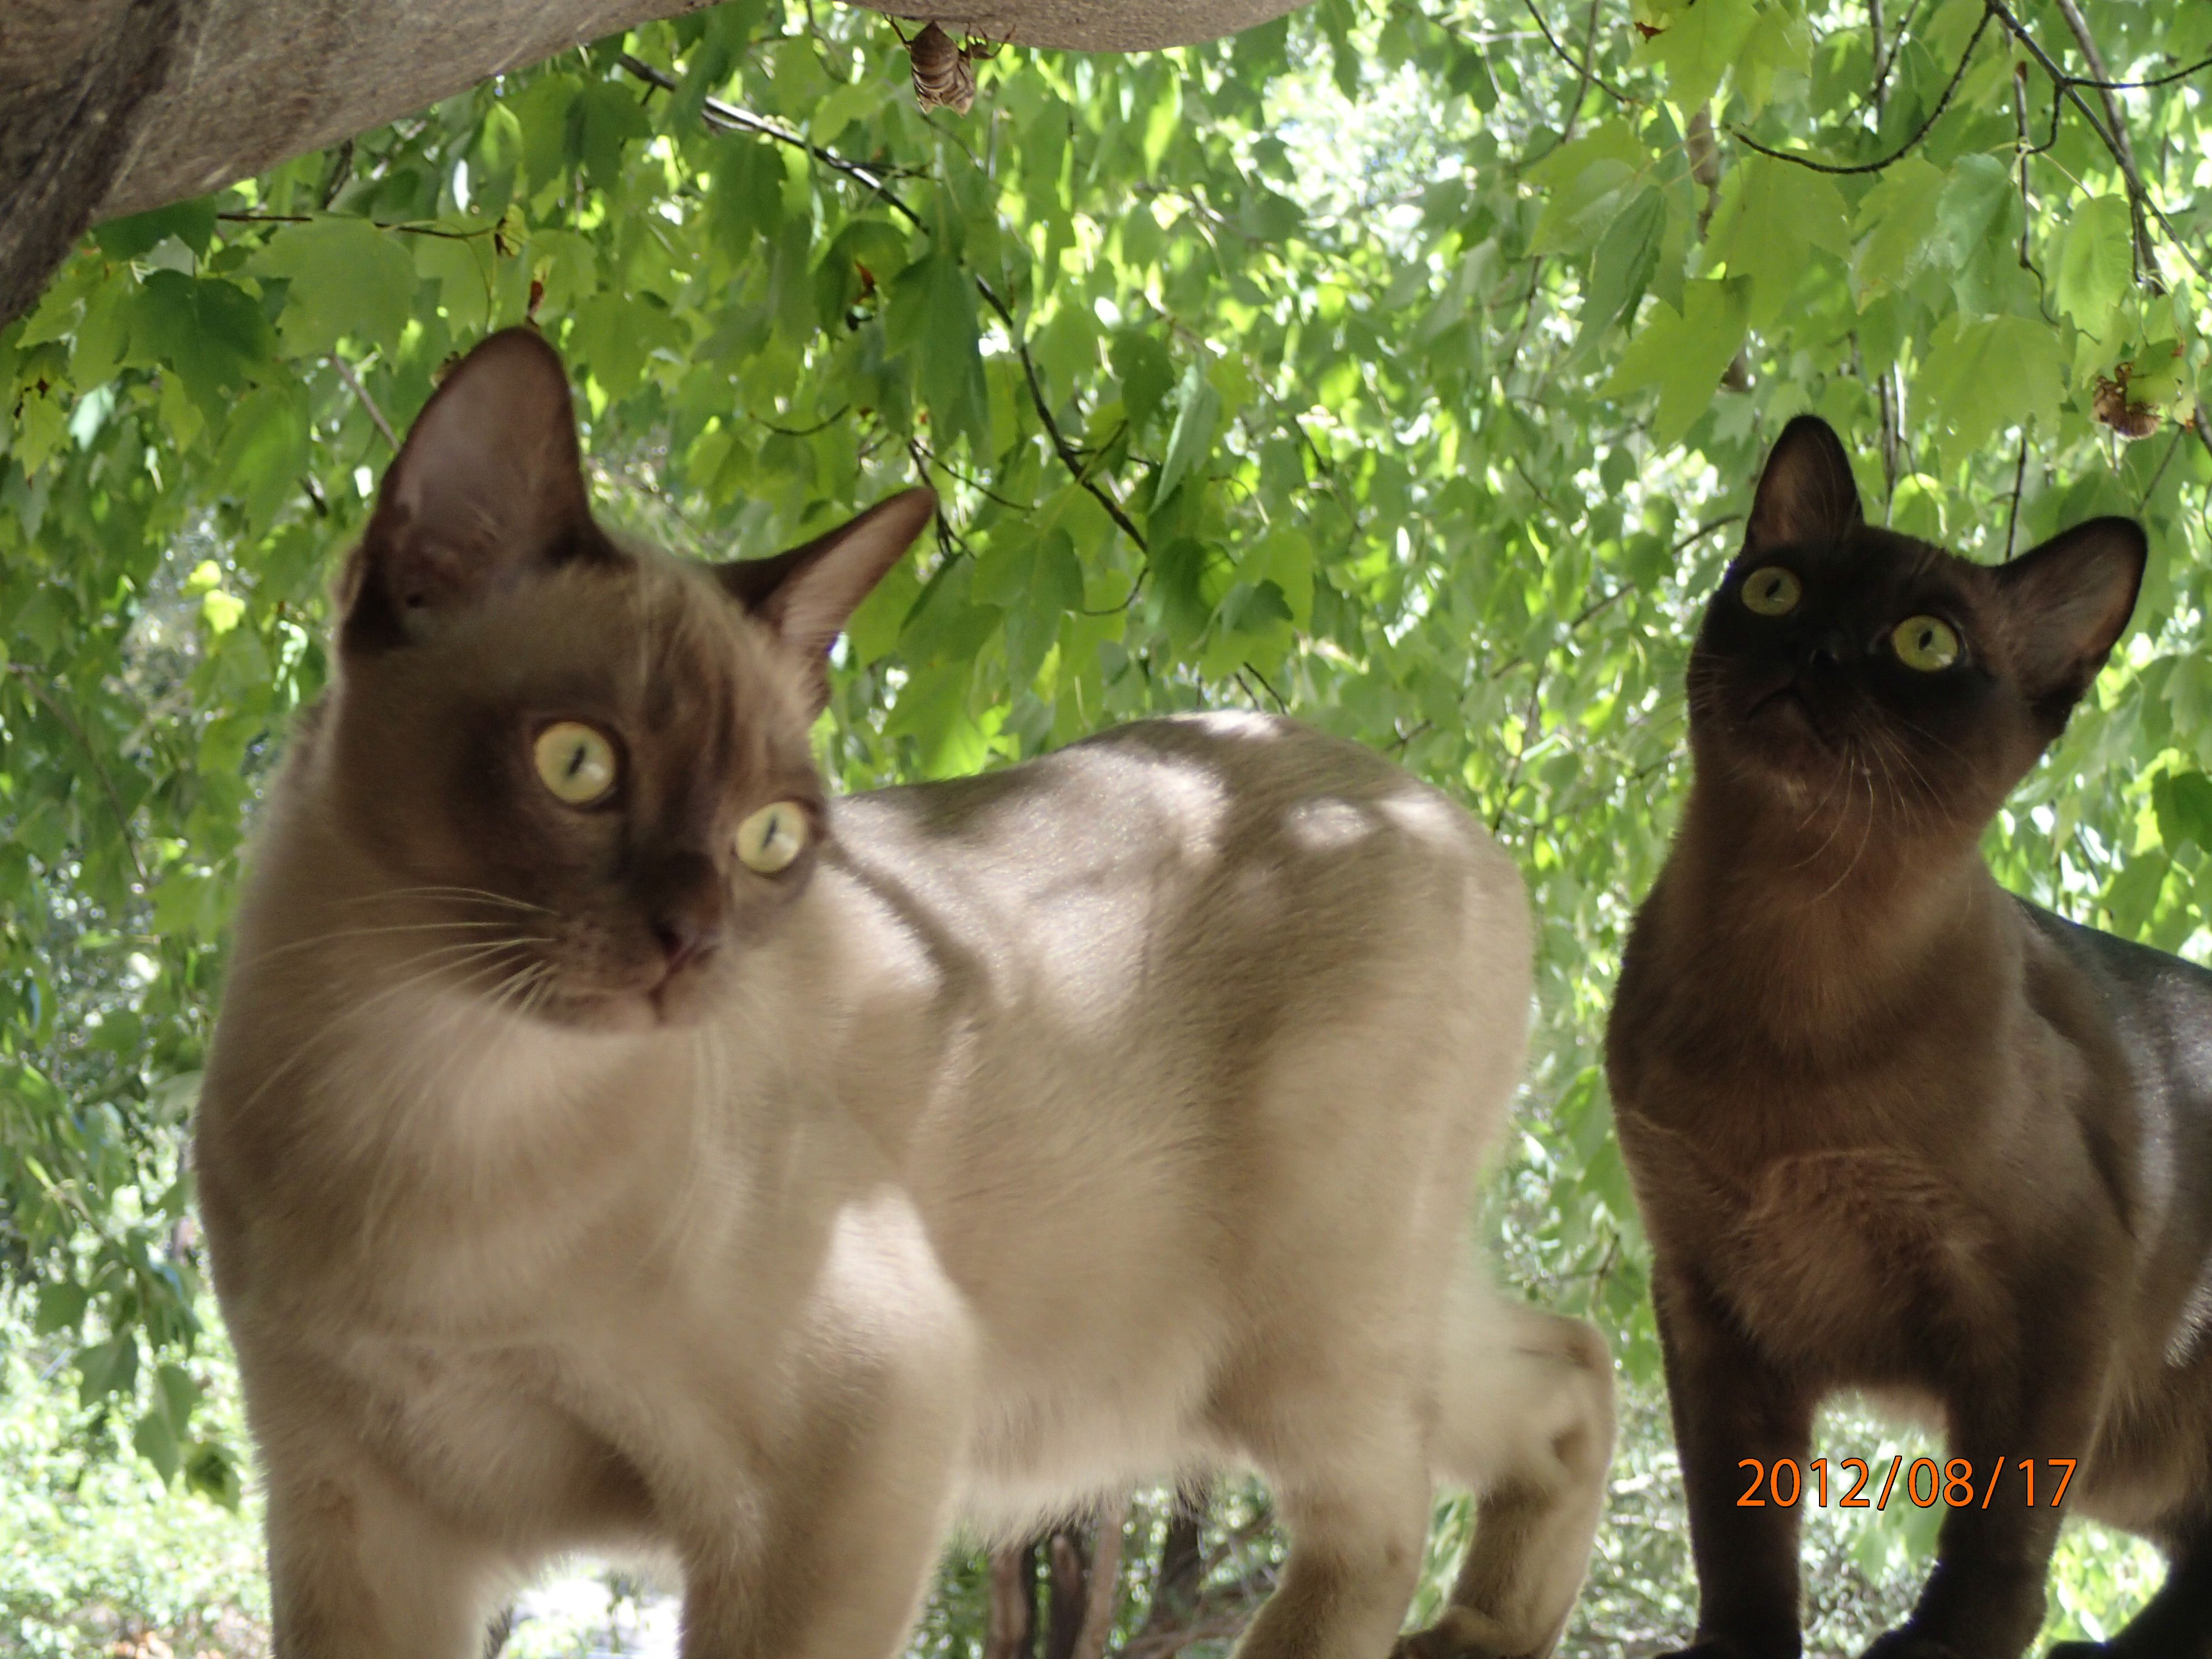 Burmese Kittens 6 1 2 Months Old Sir Winston Churchill And His Brother Franklin D Roosevelt Animaux